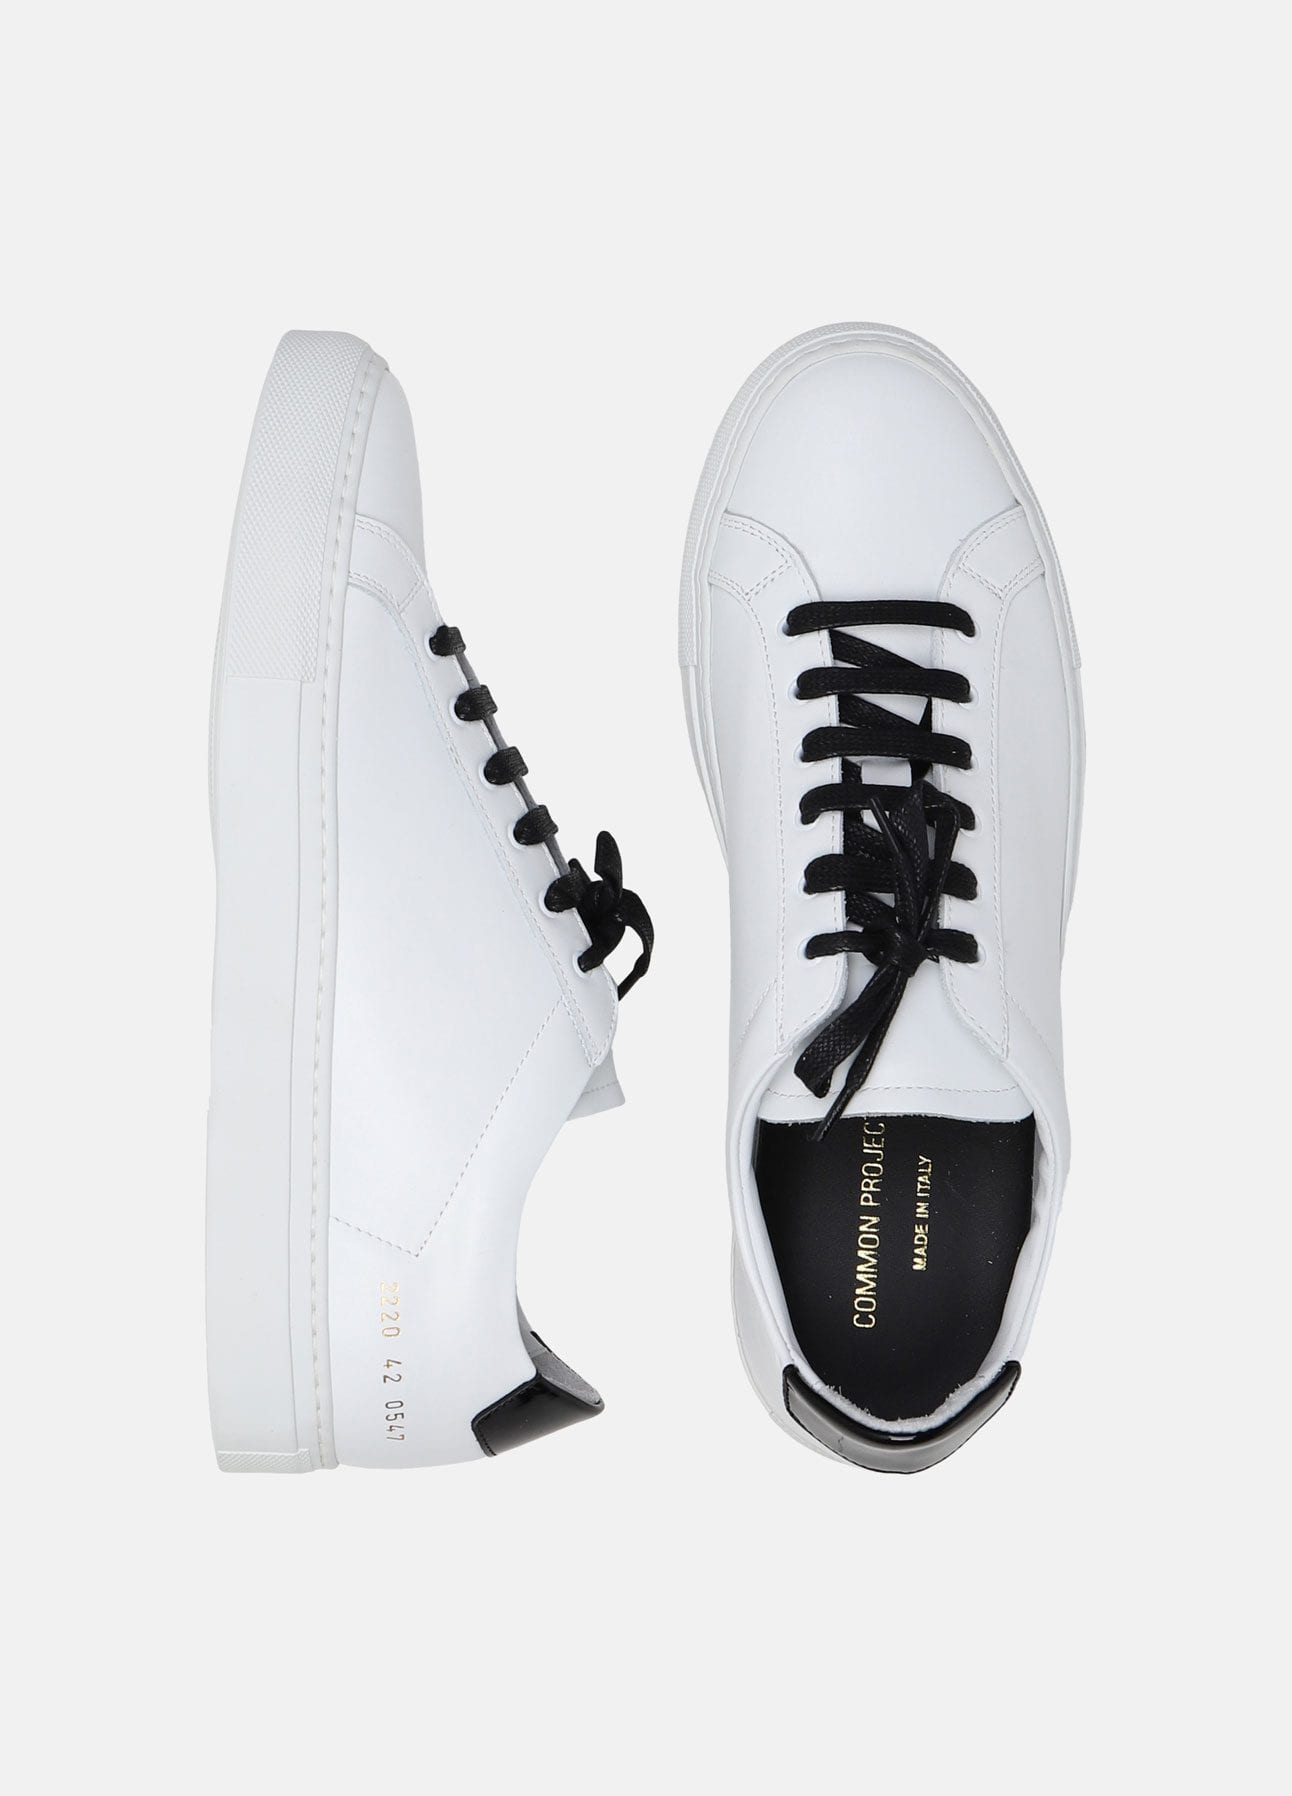 Hvid sneaker fra Common Projects